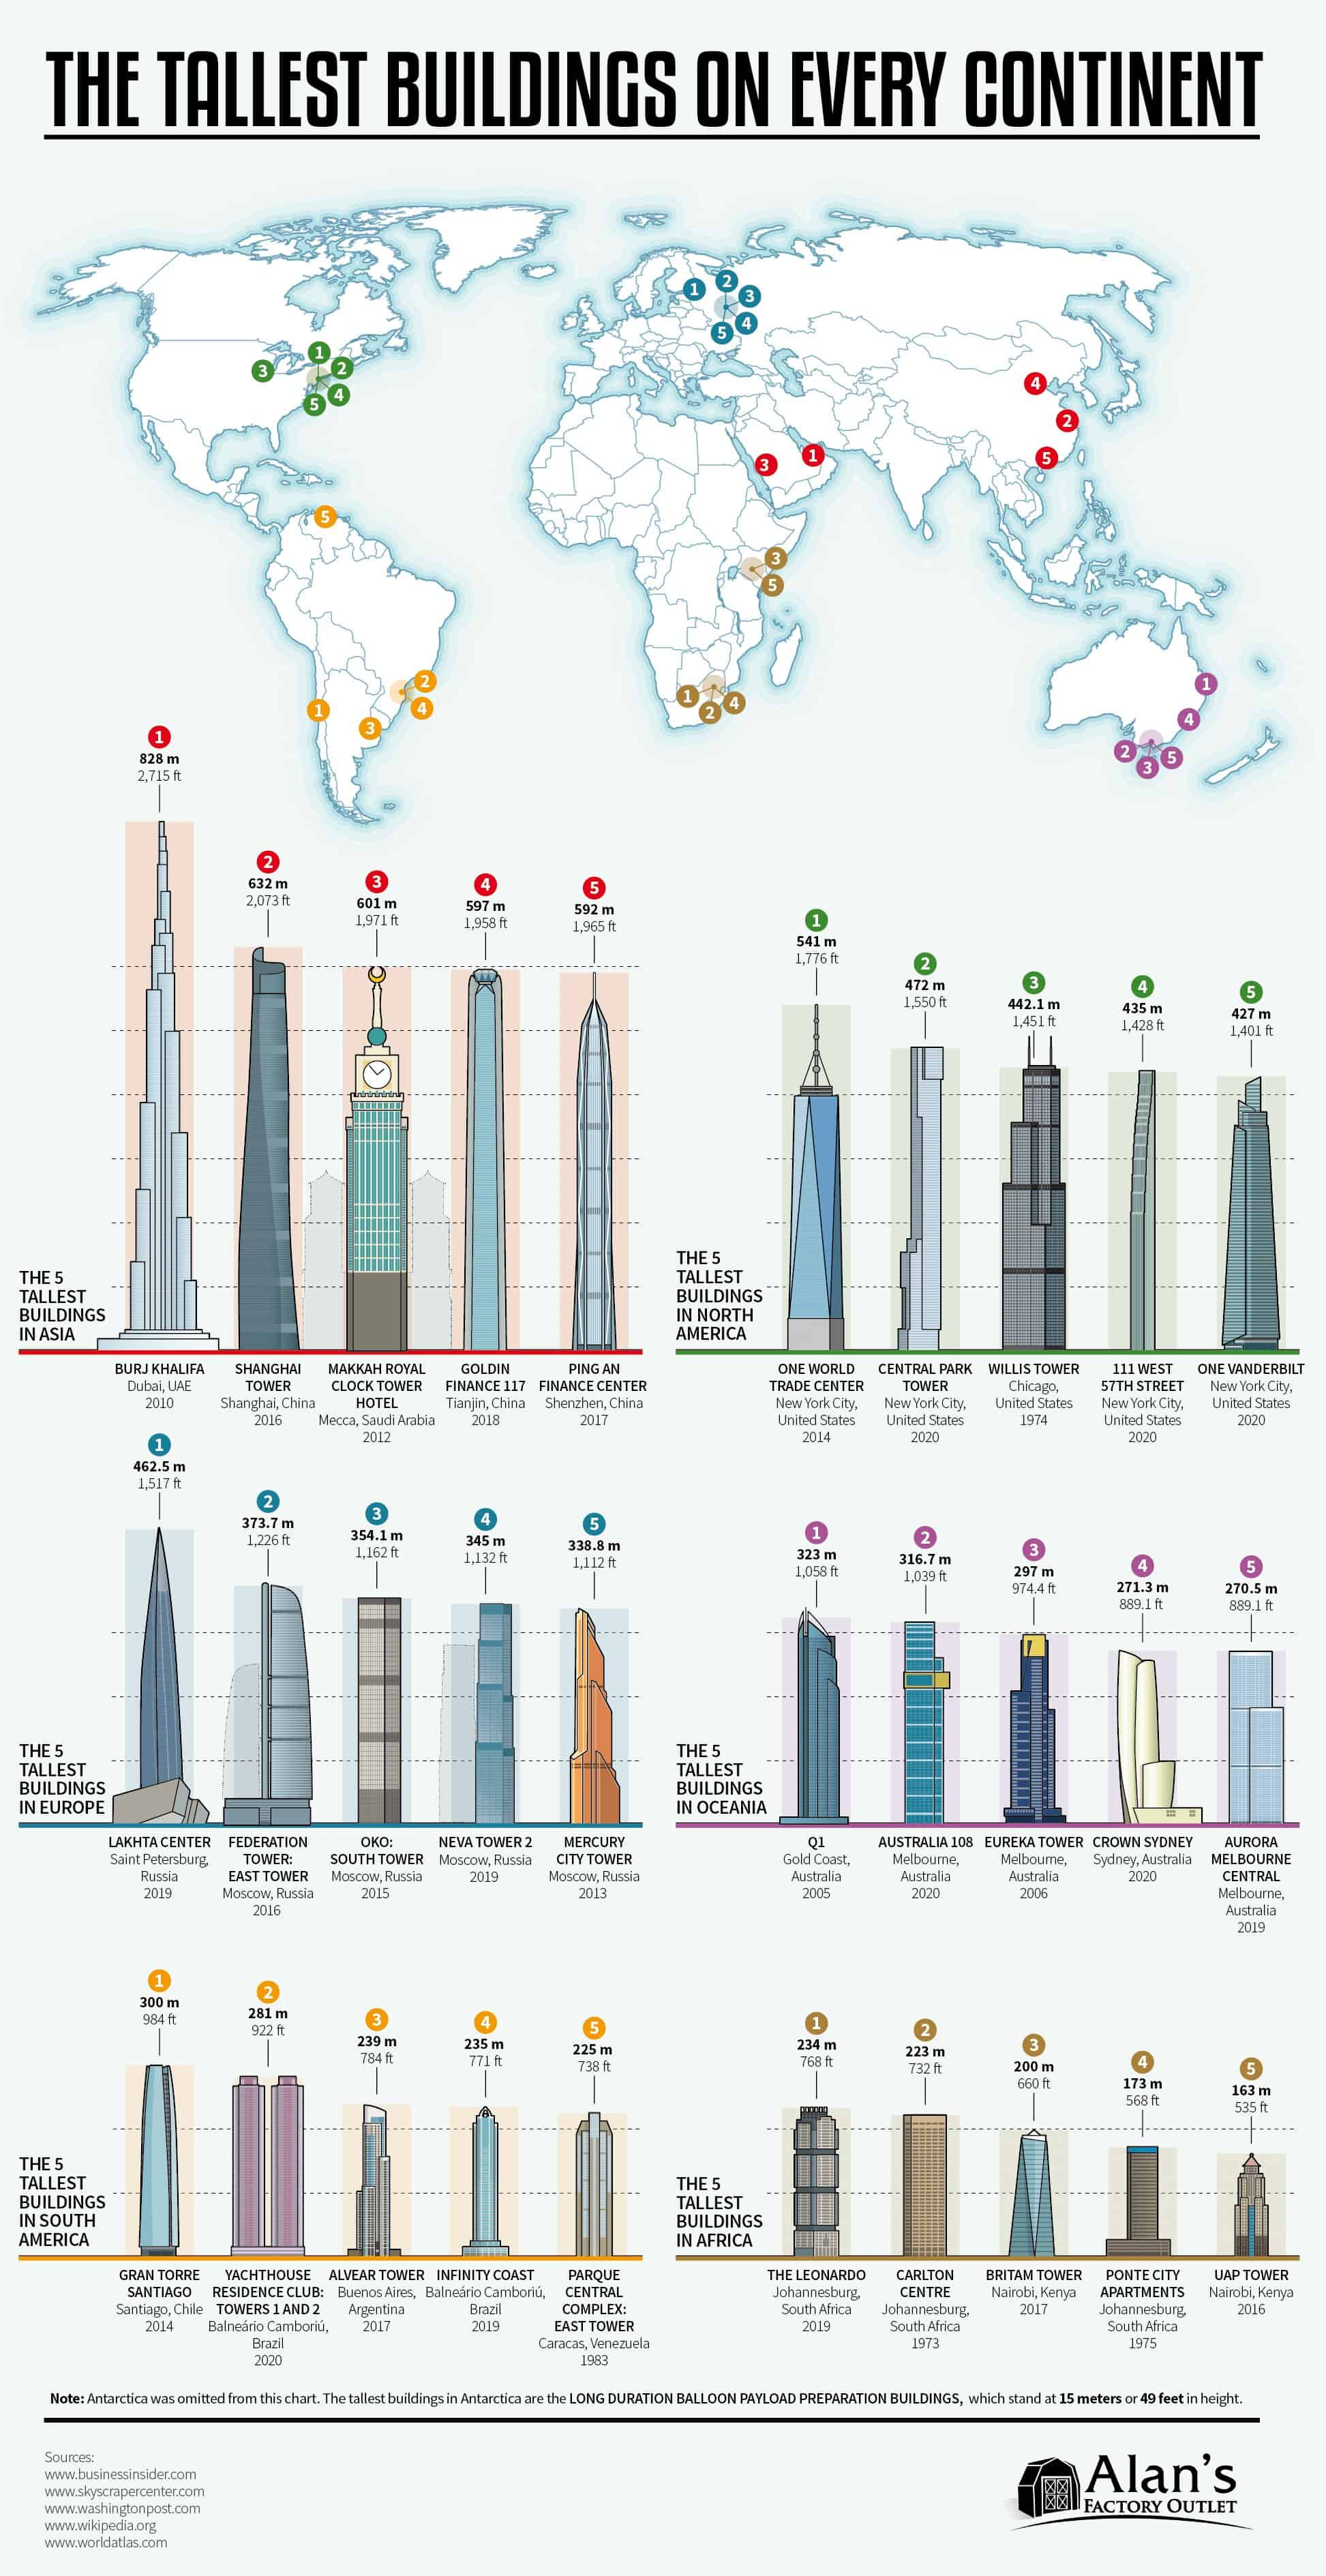 What are the Tallest Buildings on Every Continent?